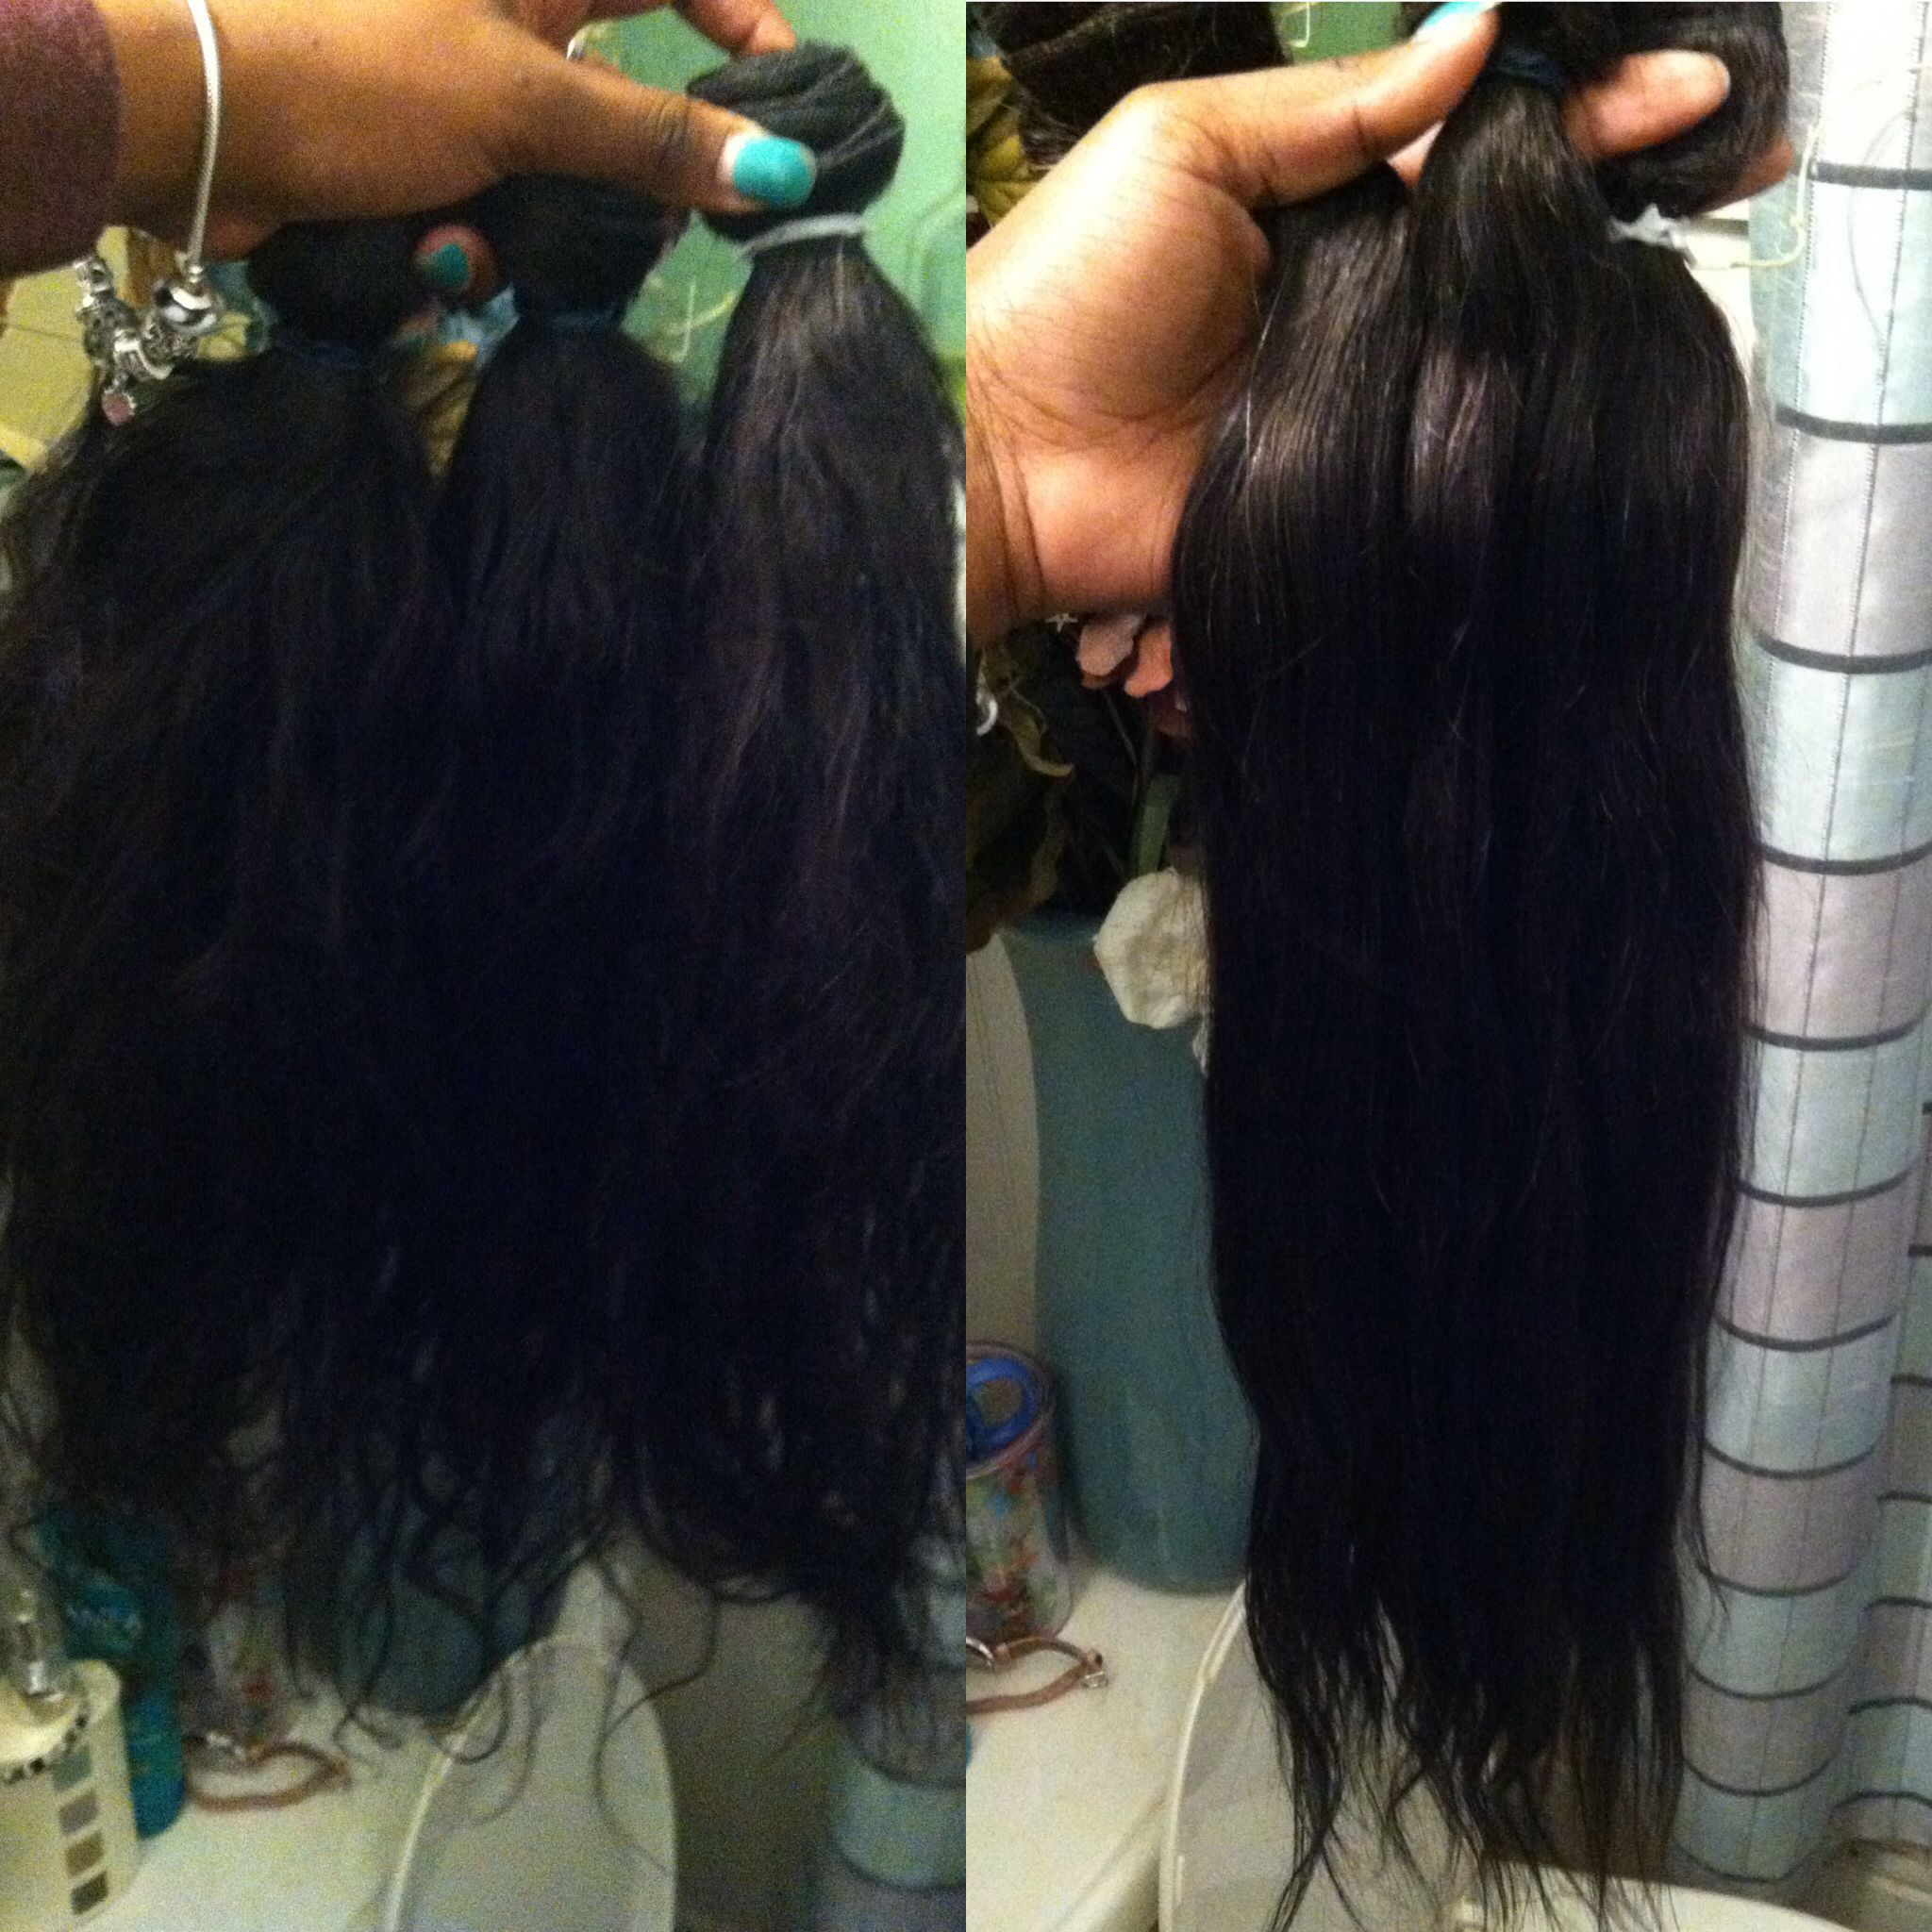 Virgin Hair Bleach Bath Results